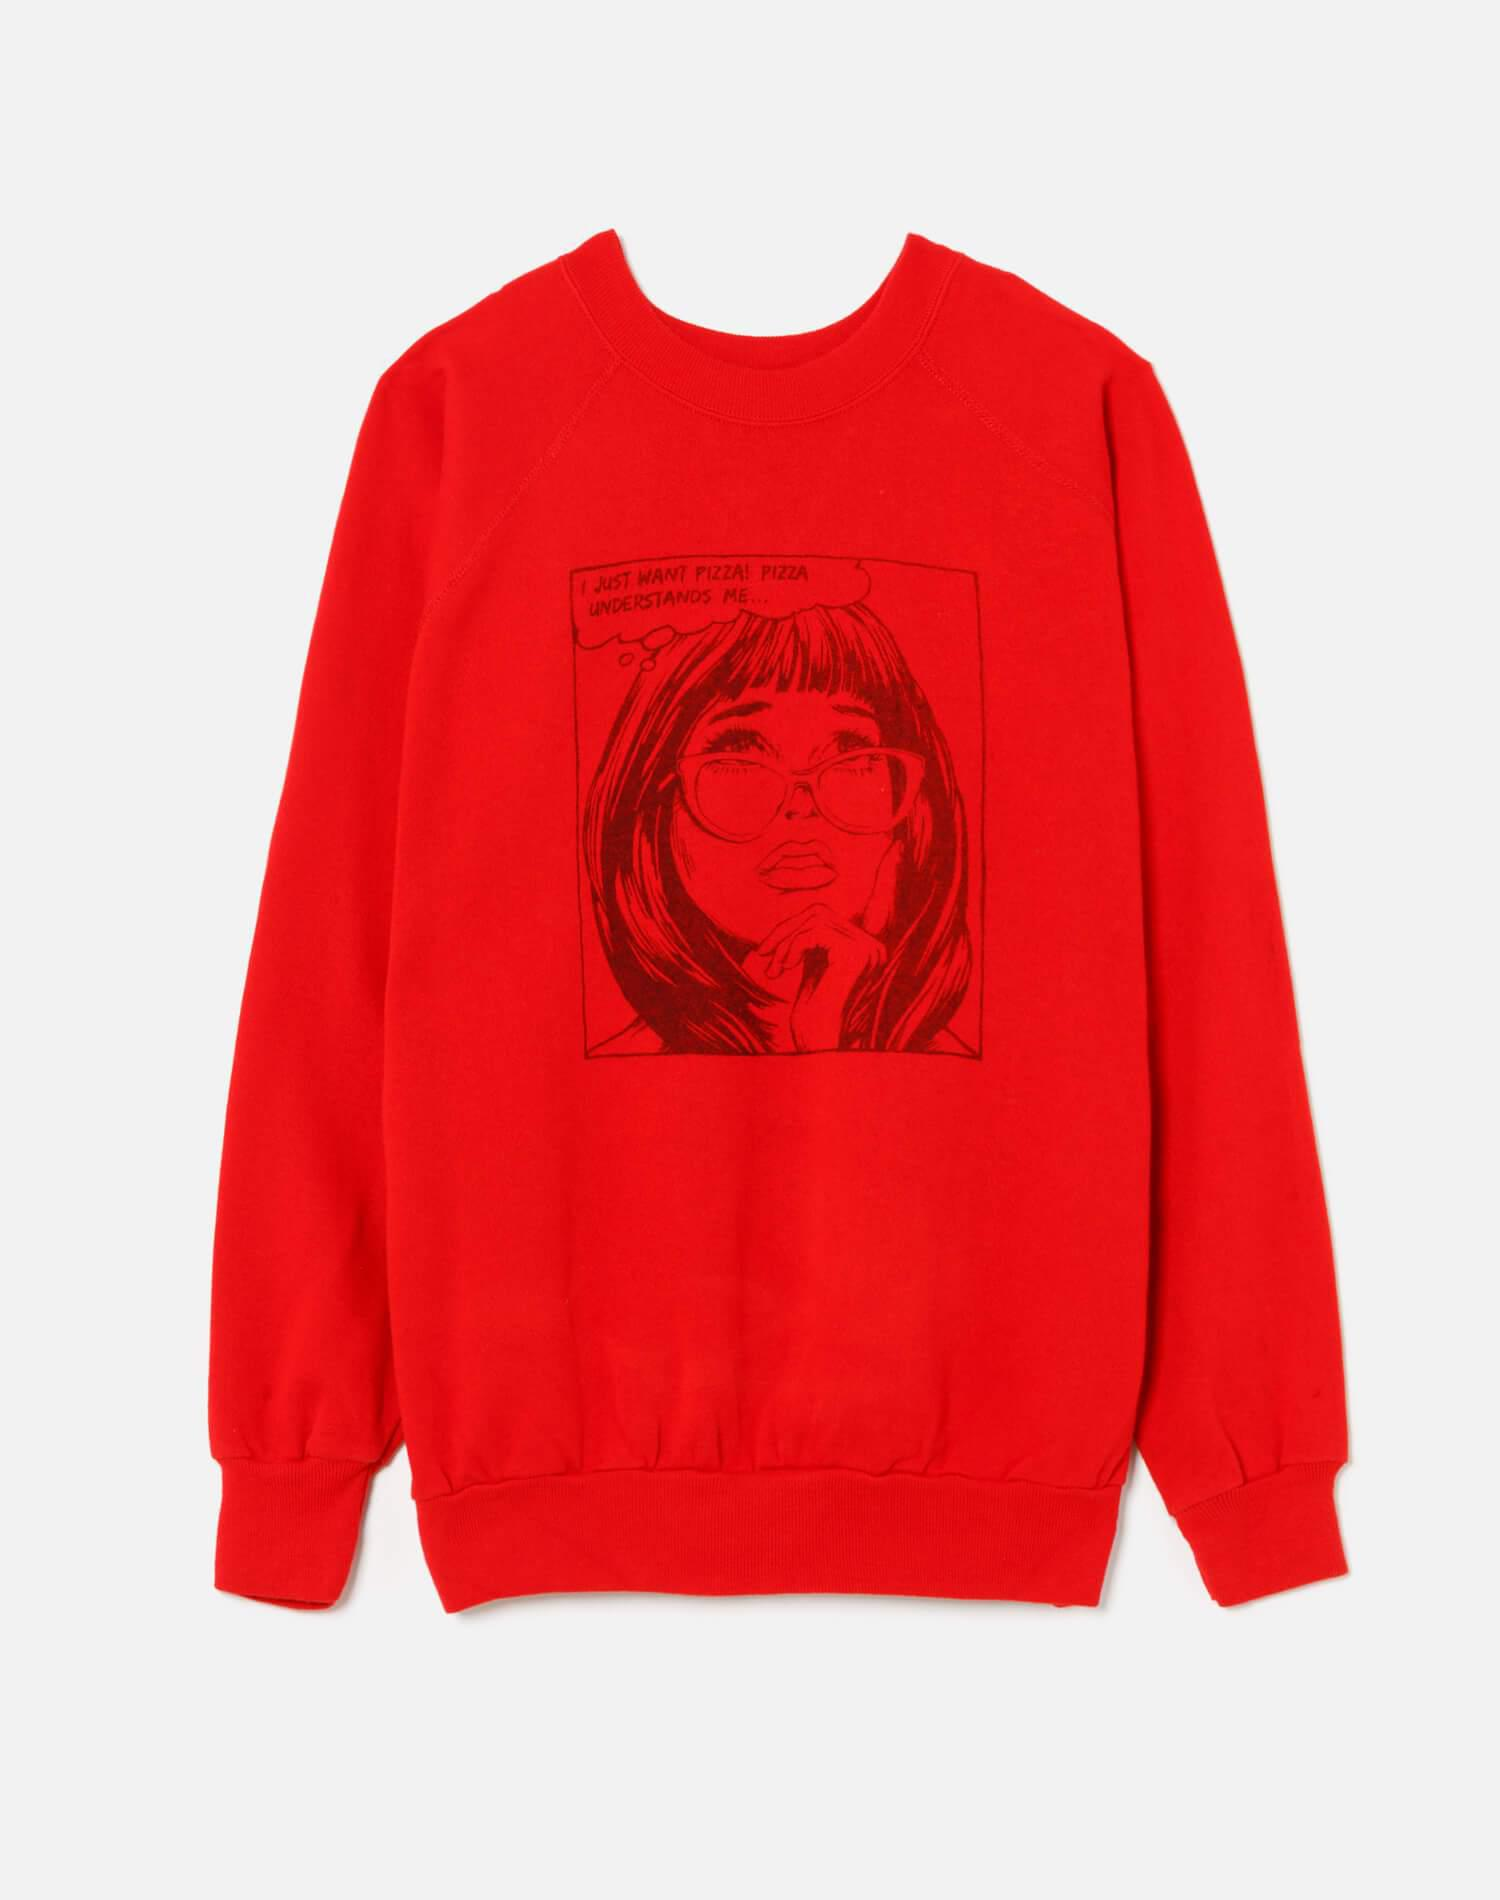 """Upcycled """"I Just Want Pizza"""" Sweatshirt - Red"""